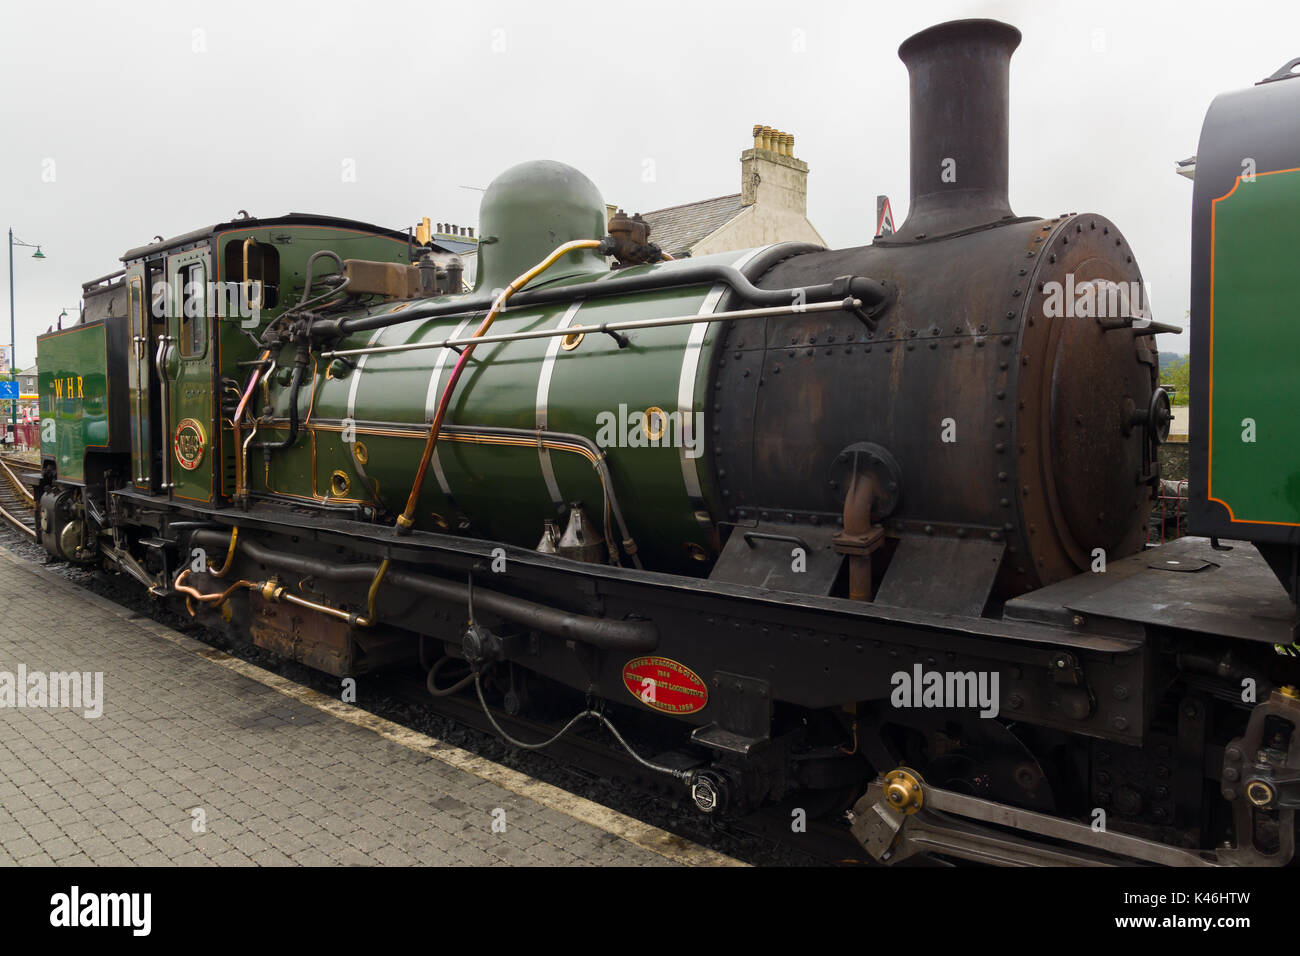 Ex-South African Railways NGG16 class narrow gauge Beyer Peacock steam locomotive number NG143 operated on the Welsh Highland Railway - Stock Image